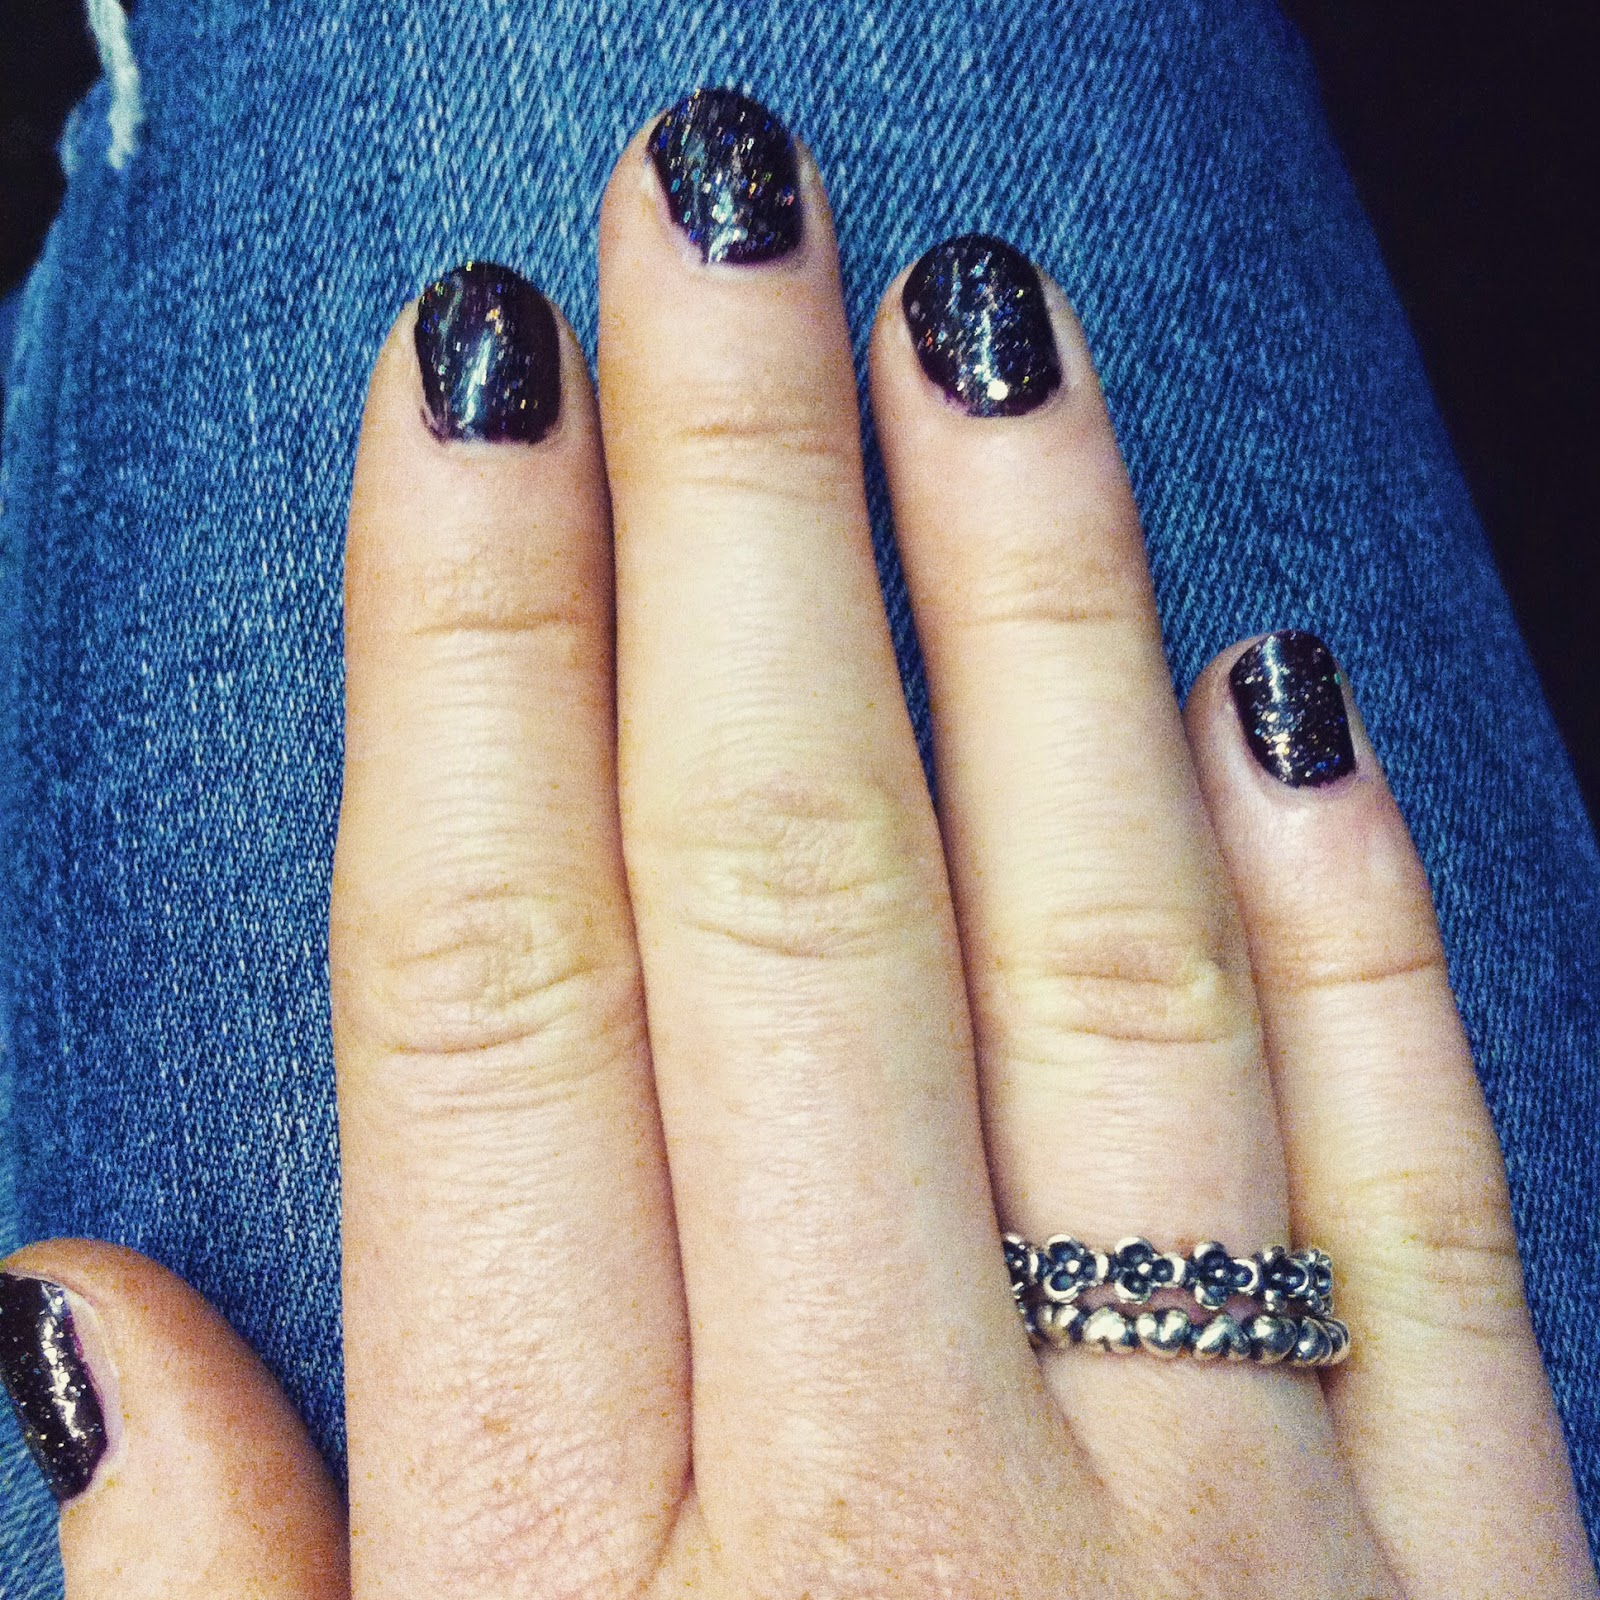 Barry M Nail Polish in Diamond Glitter and O.P.I Nail Polish in Lincoln Park After Dark